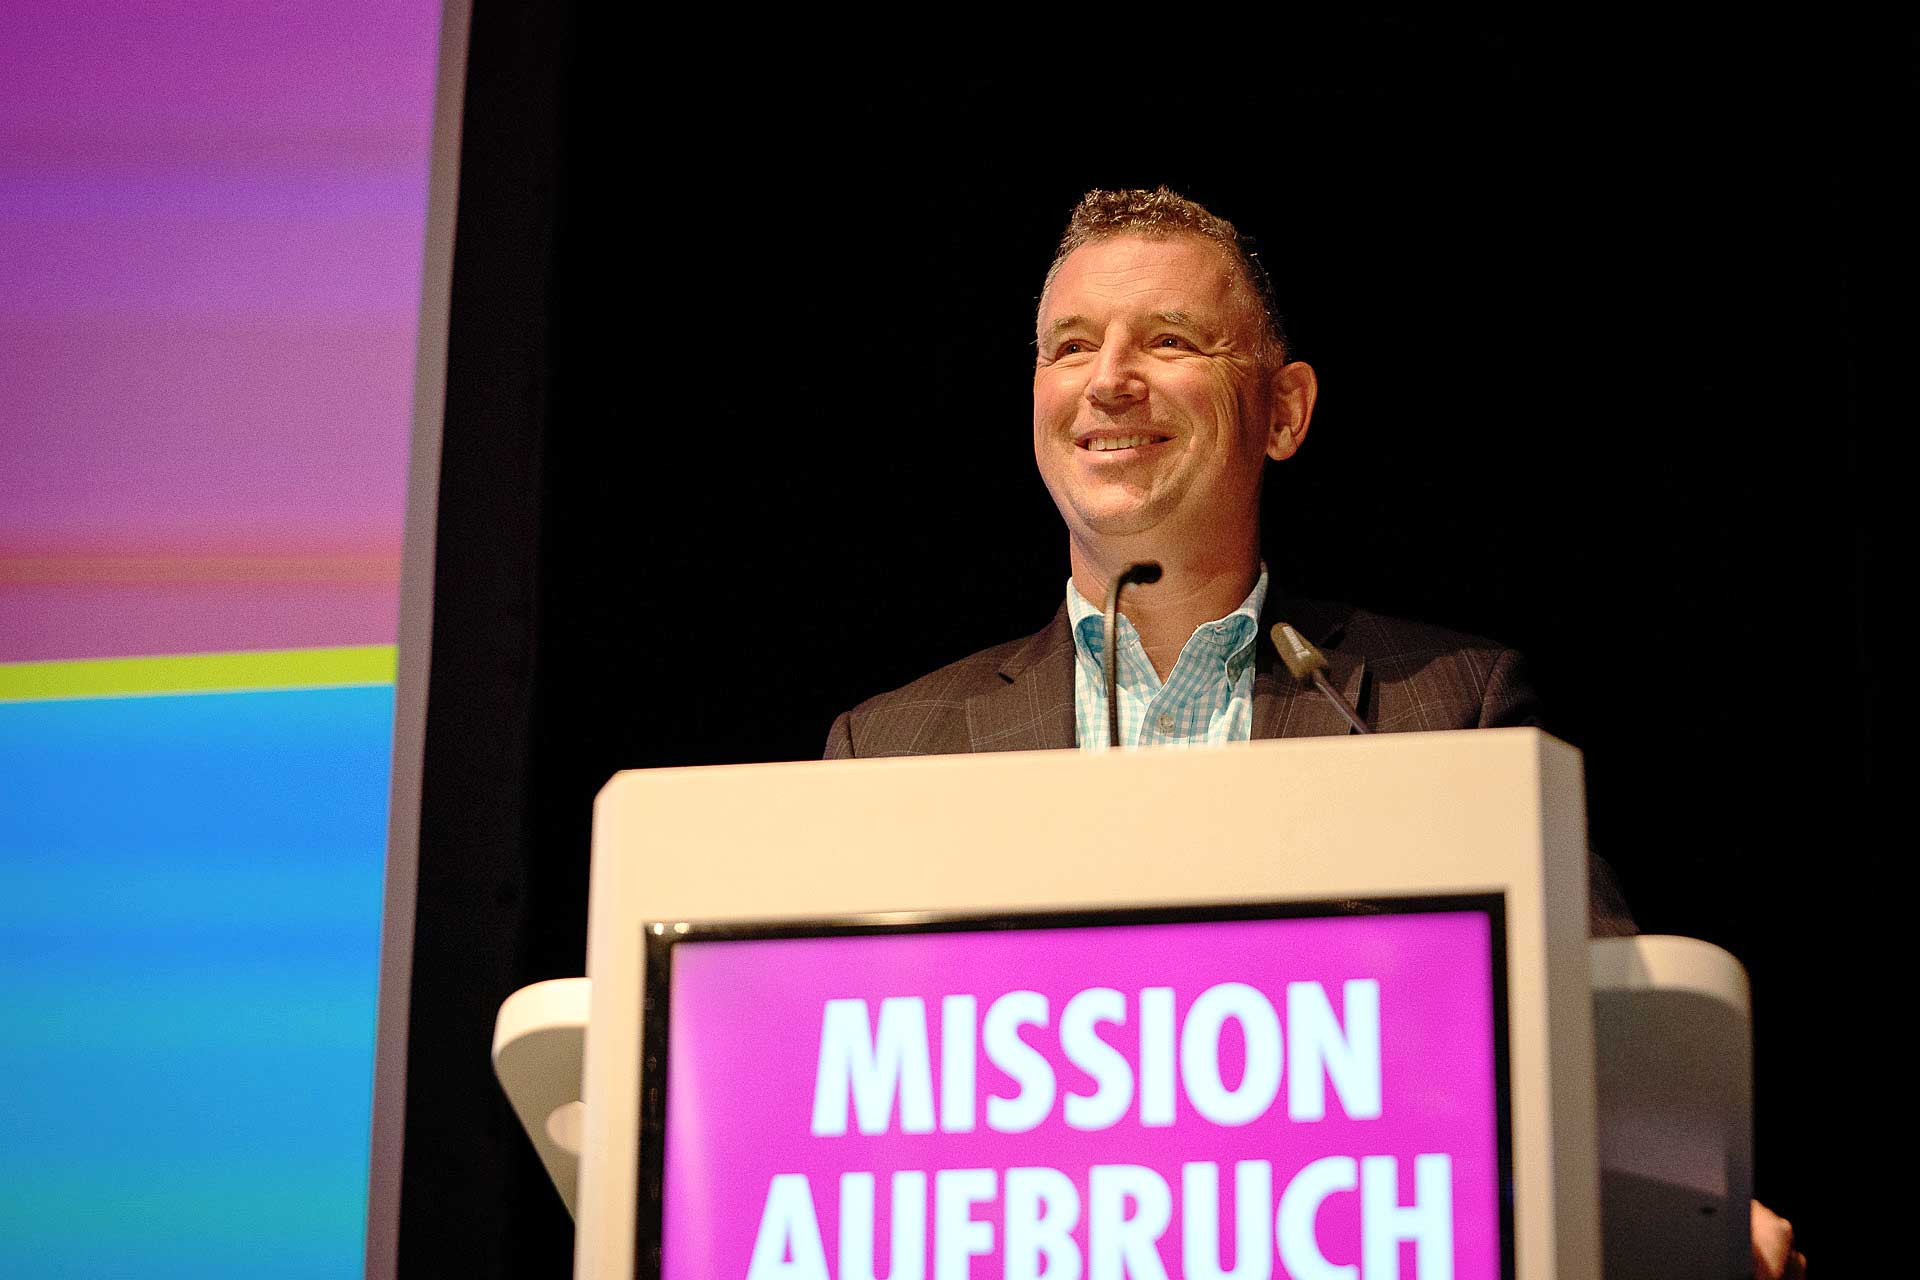 Mission Aufbruch